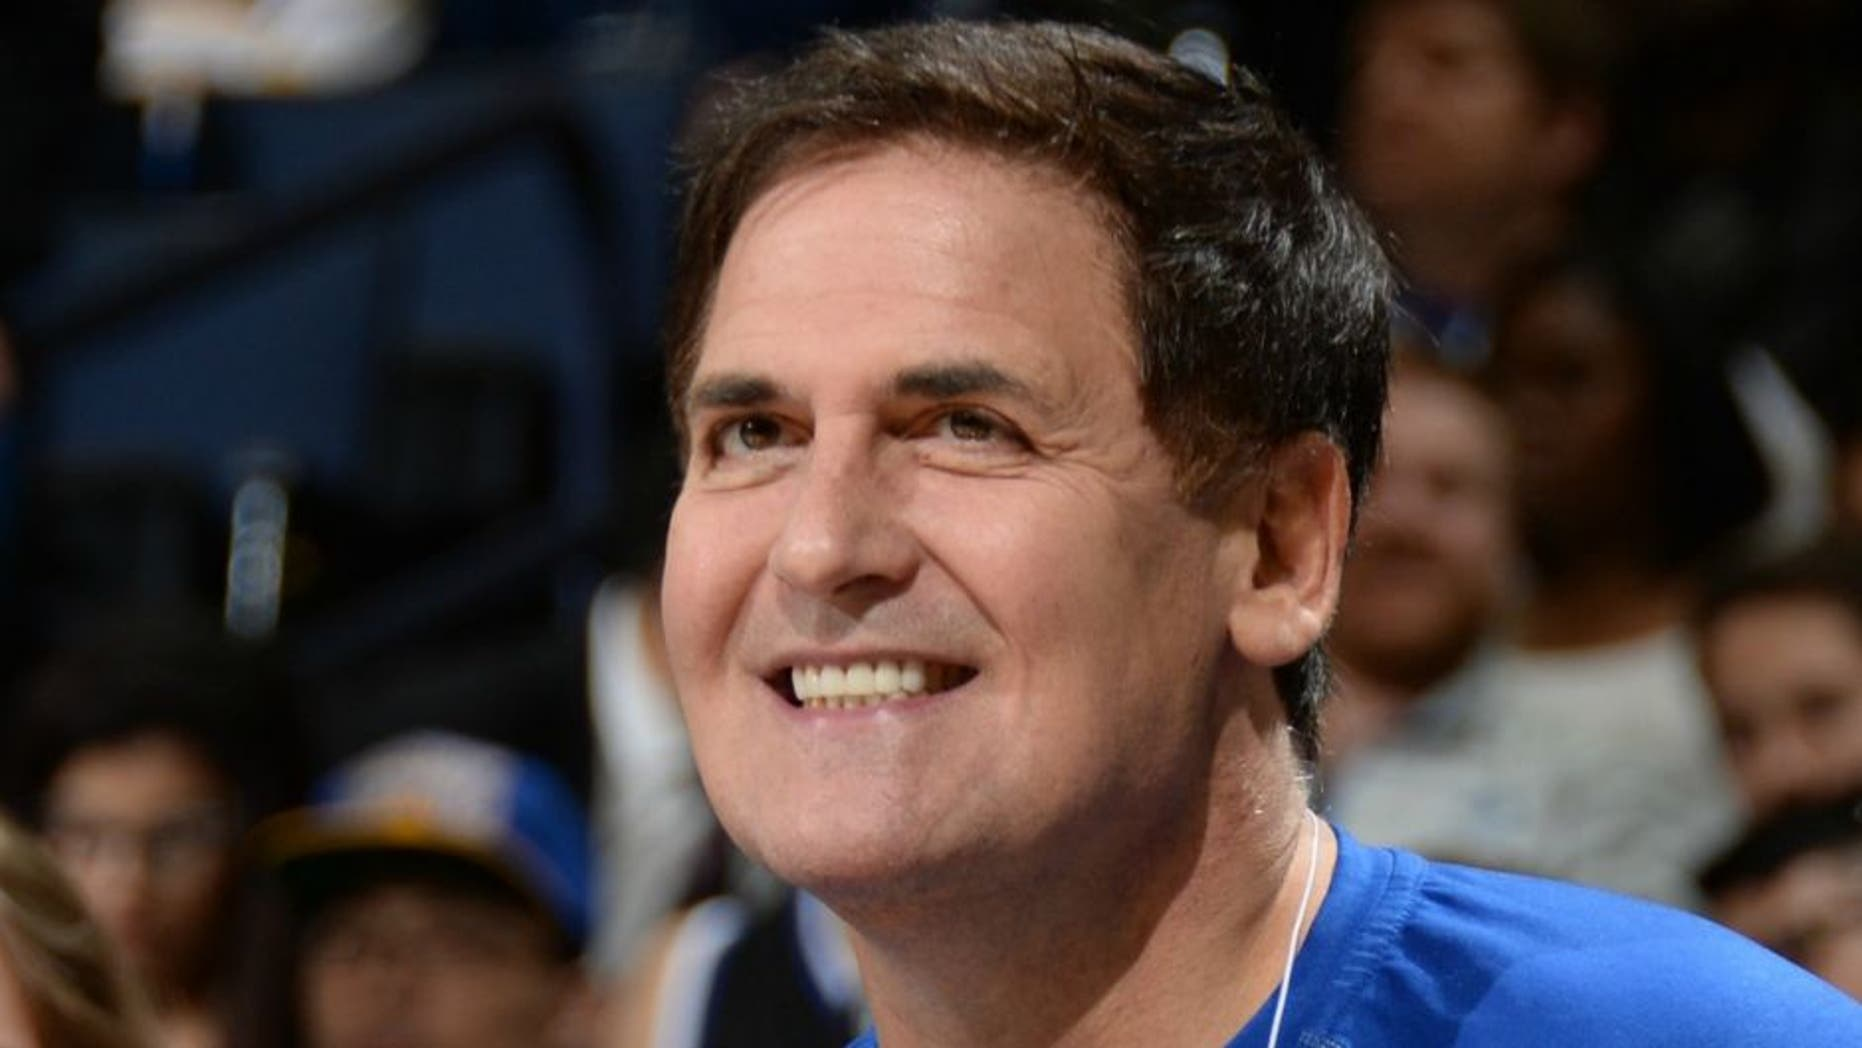 OAKLAND, CA - FEBRUARY 4: Mark Cuban, Owner of the Dallas Mavericks, attends a game between the Golden State Warriors and the Dallas Mavericks at Oracle Arena on February 4, 2015 in Oakland, California. NOTE TO USER: User expressly acknowledges and agrees that, by downloading and/or using this Photograph, user is consenting to the terms and conditions of the Getty Images License Agreement. Mandatory Copyright Notice: Copyright 2015 NBAE (Photo by Andrew D. Bernstein/NBAE via Getty Images)